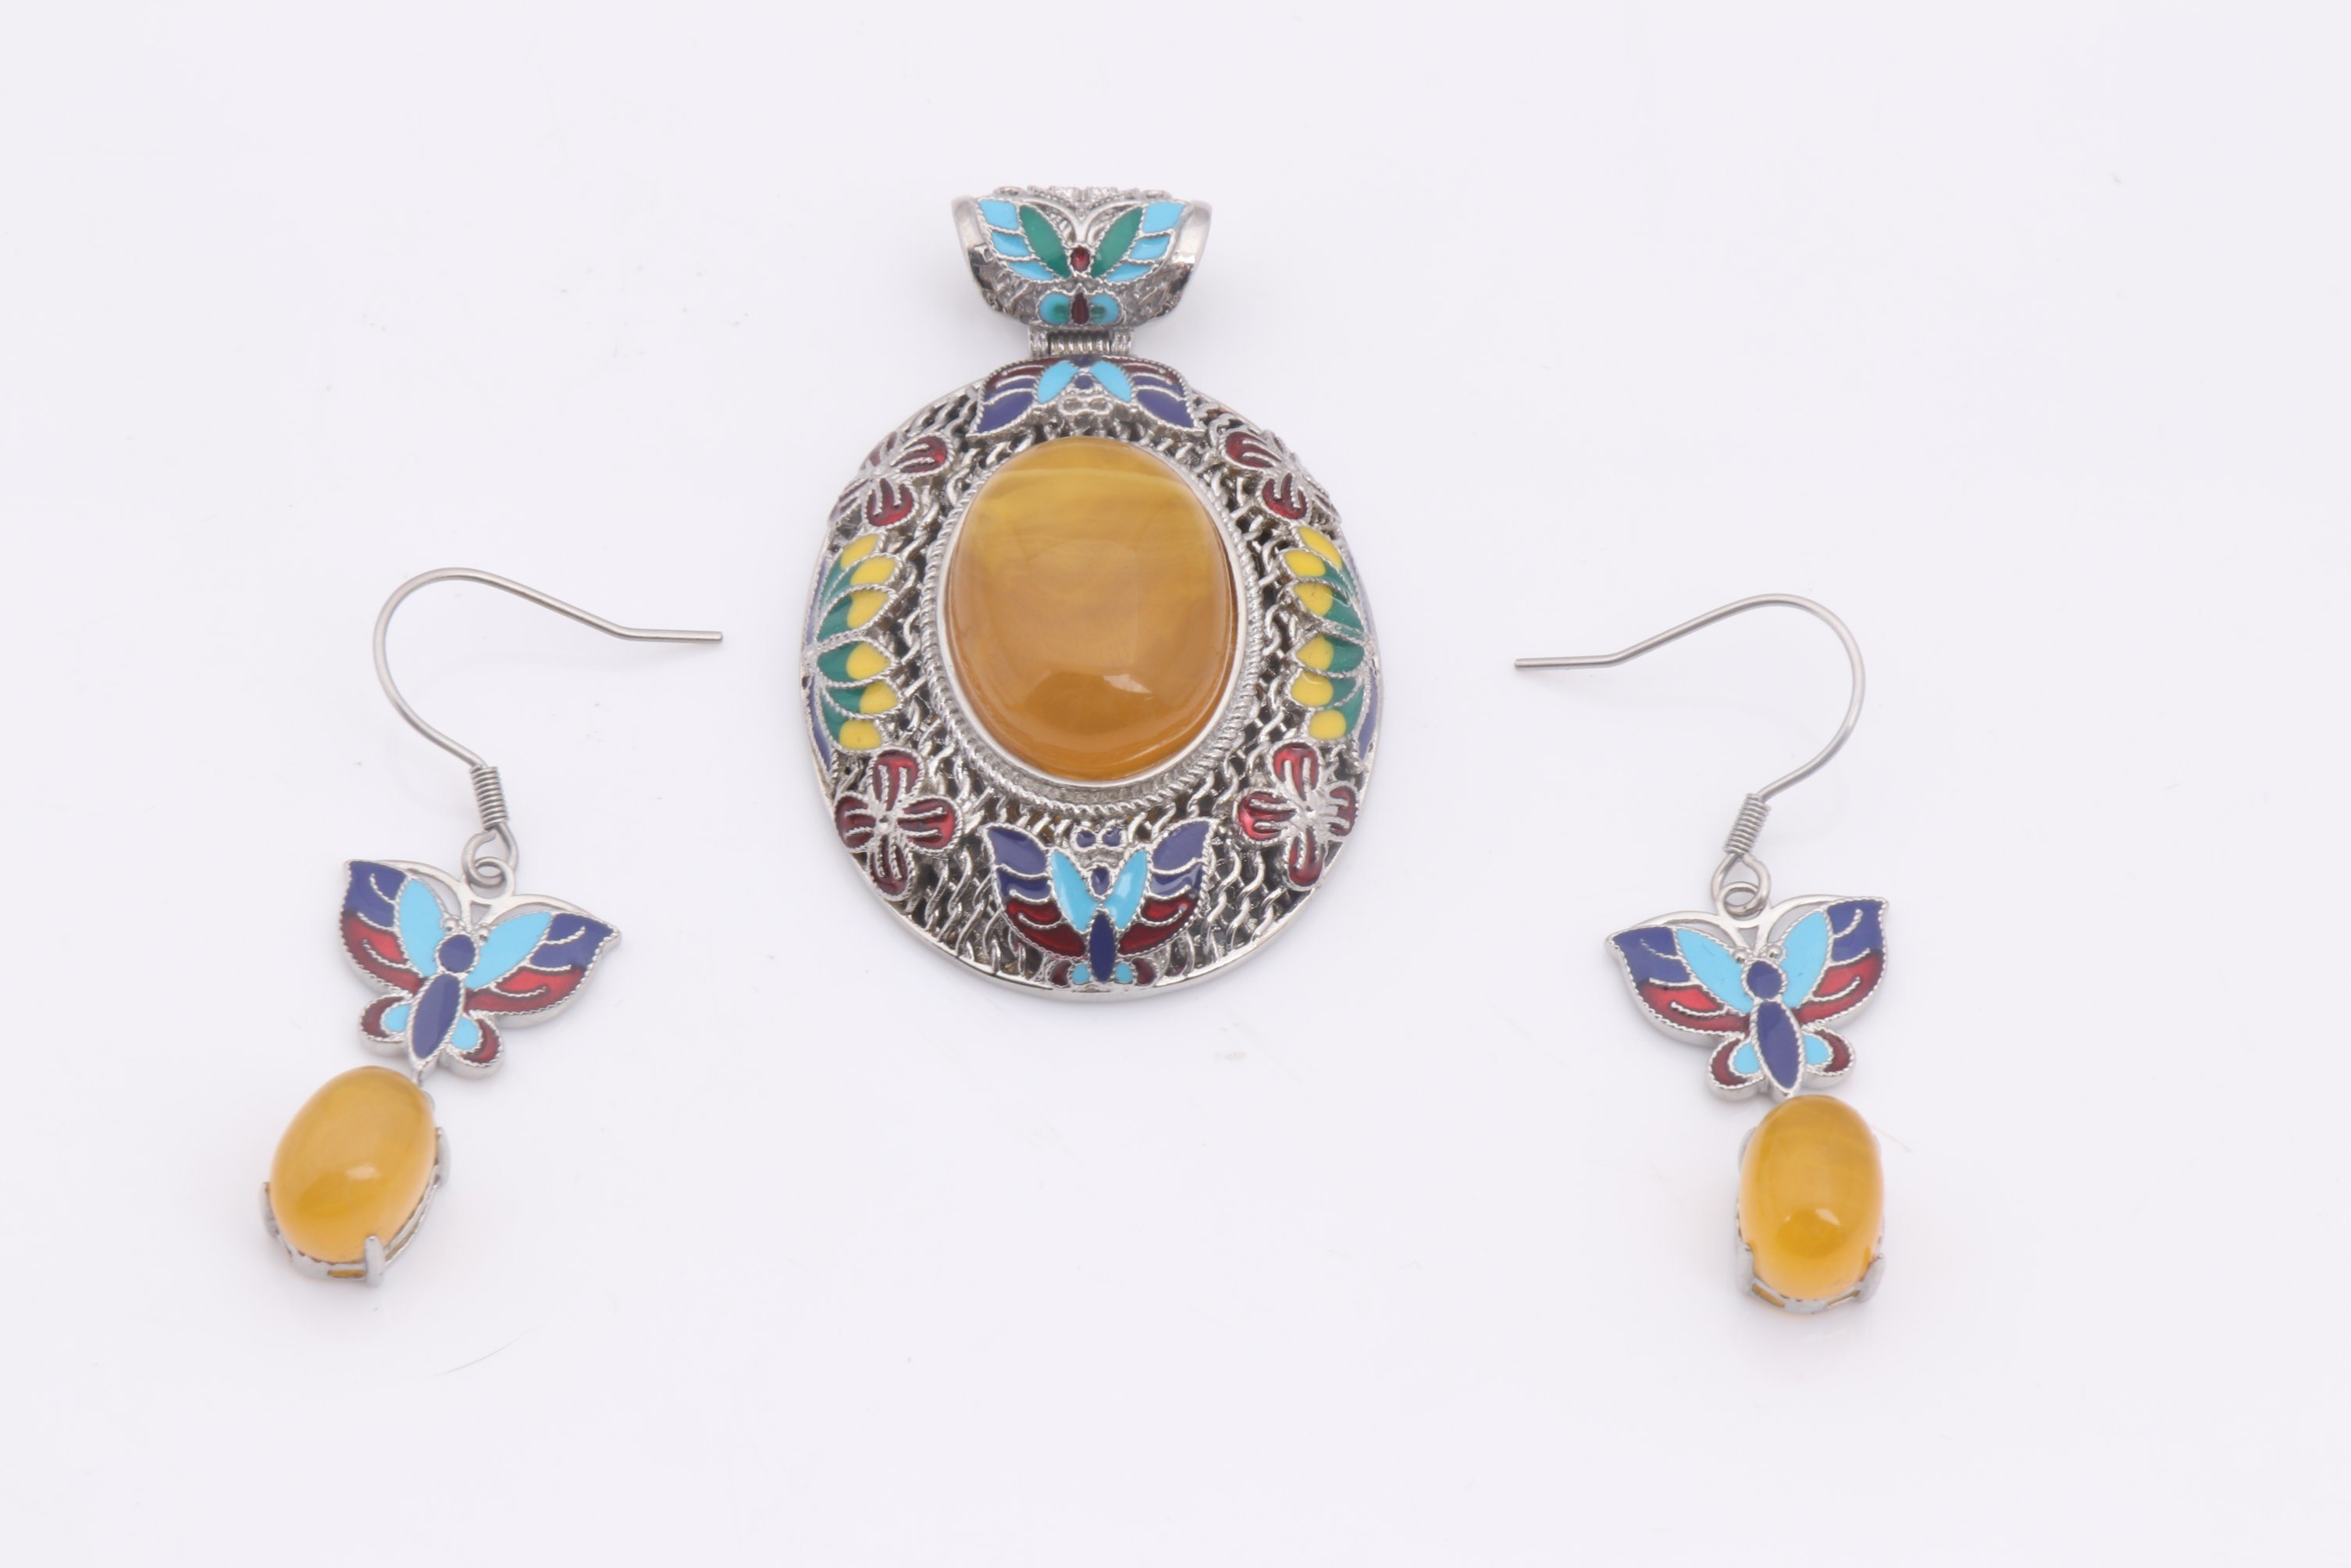 Vintage Style Hollow Crystal Flower Shaped Pendant Retro Stone Necklace